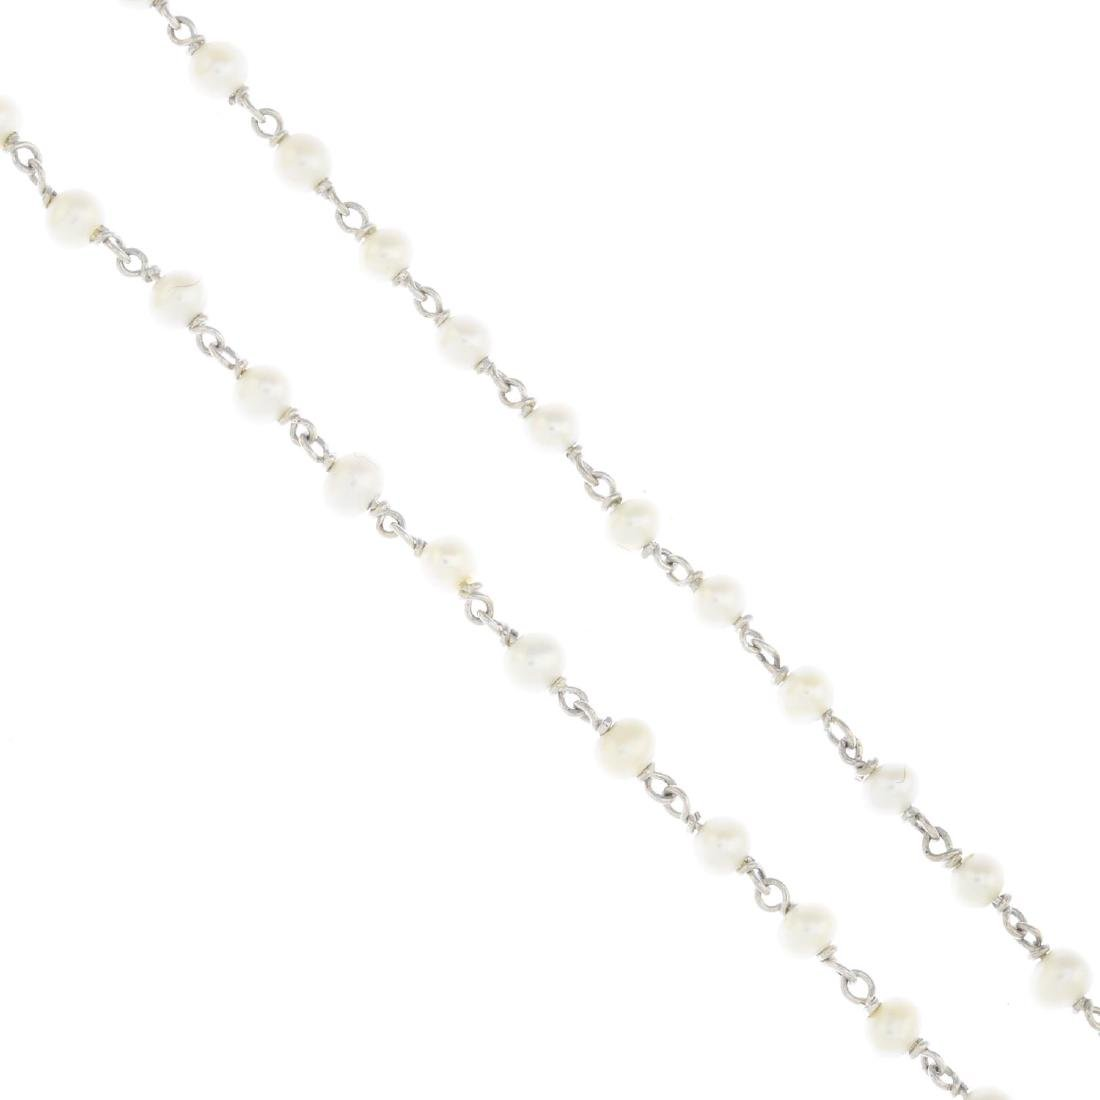 An 18ct gold seed pearl necklace. Designed as a seed